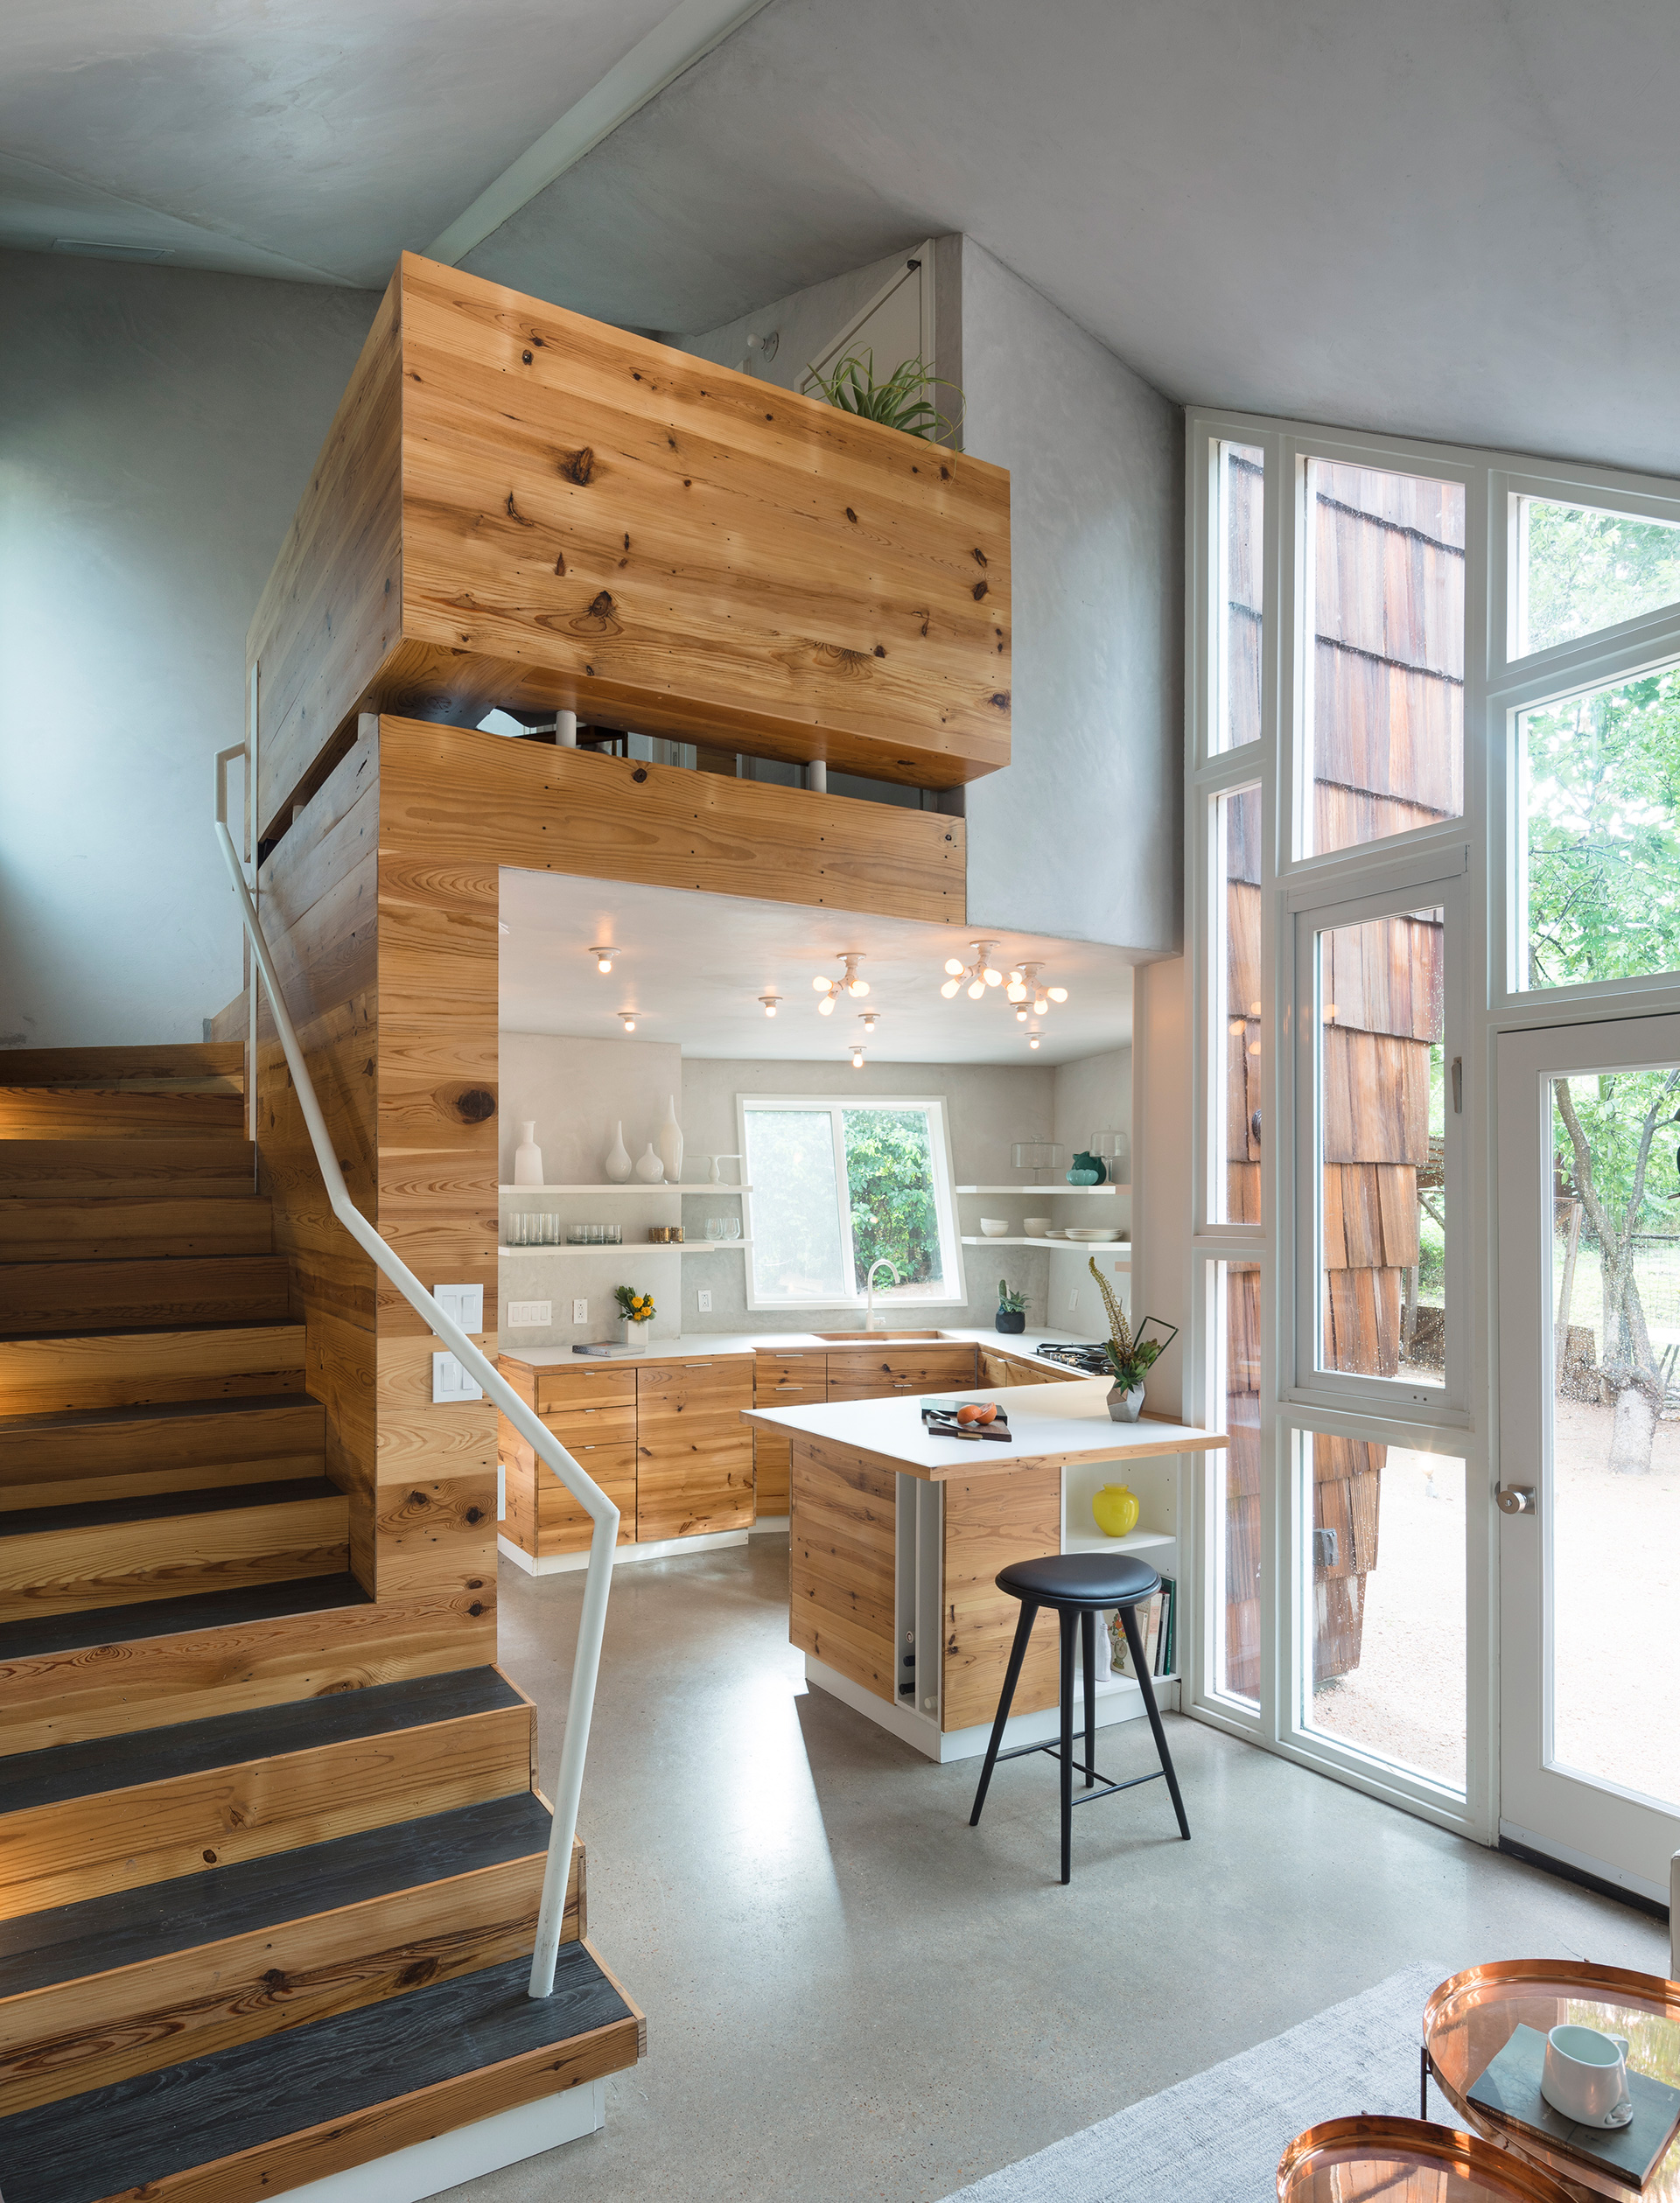 A view of the kitchen and the single flight of stairs, from the living area | The Hive| Nicole Blair | Studio 512 | STIR